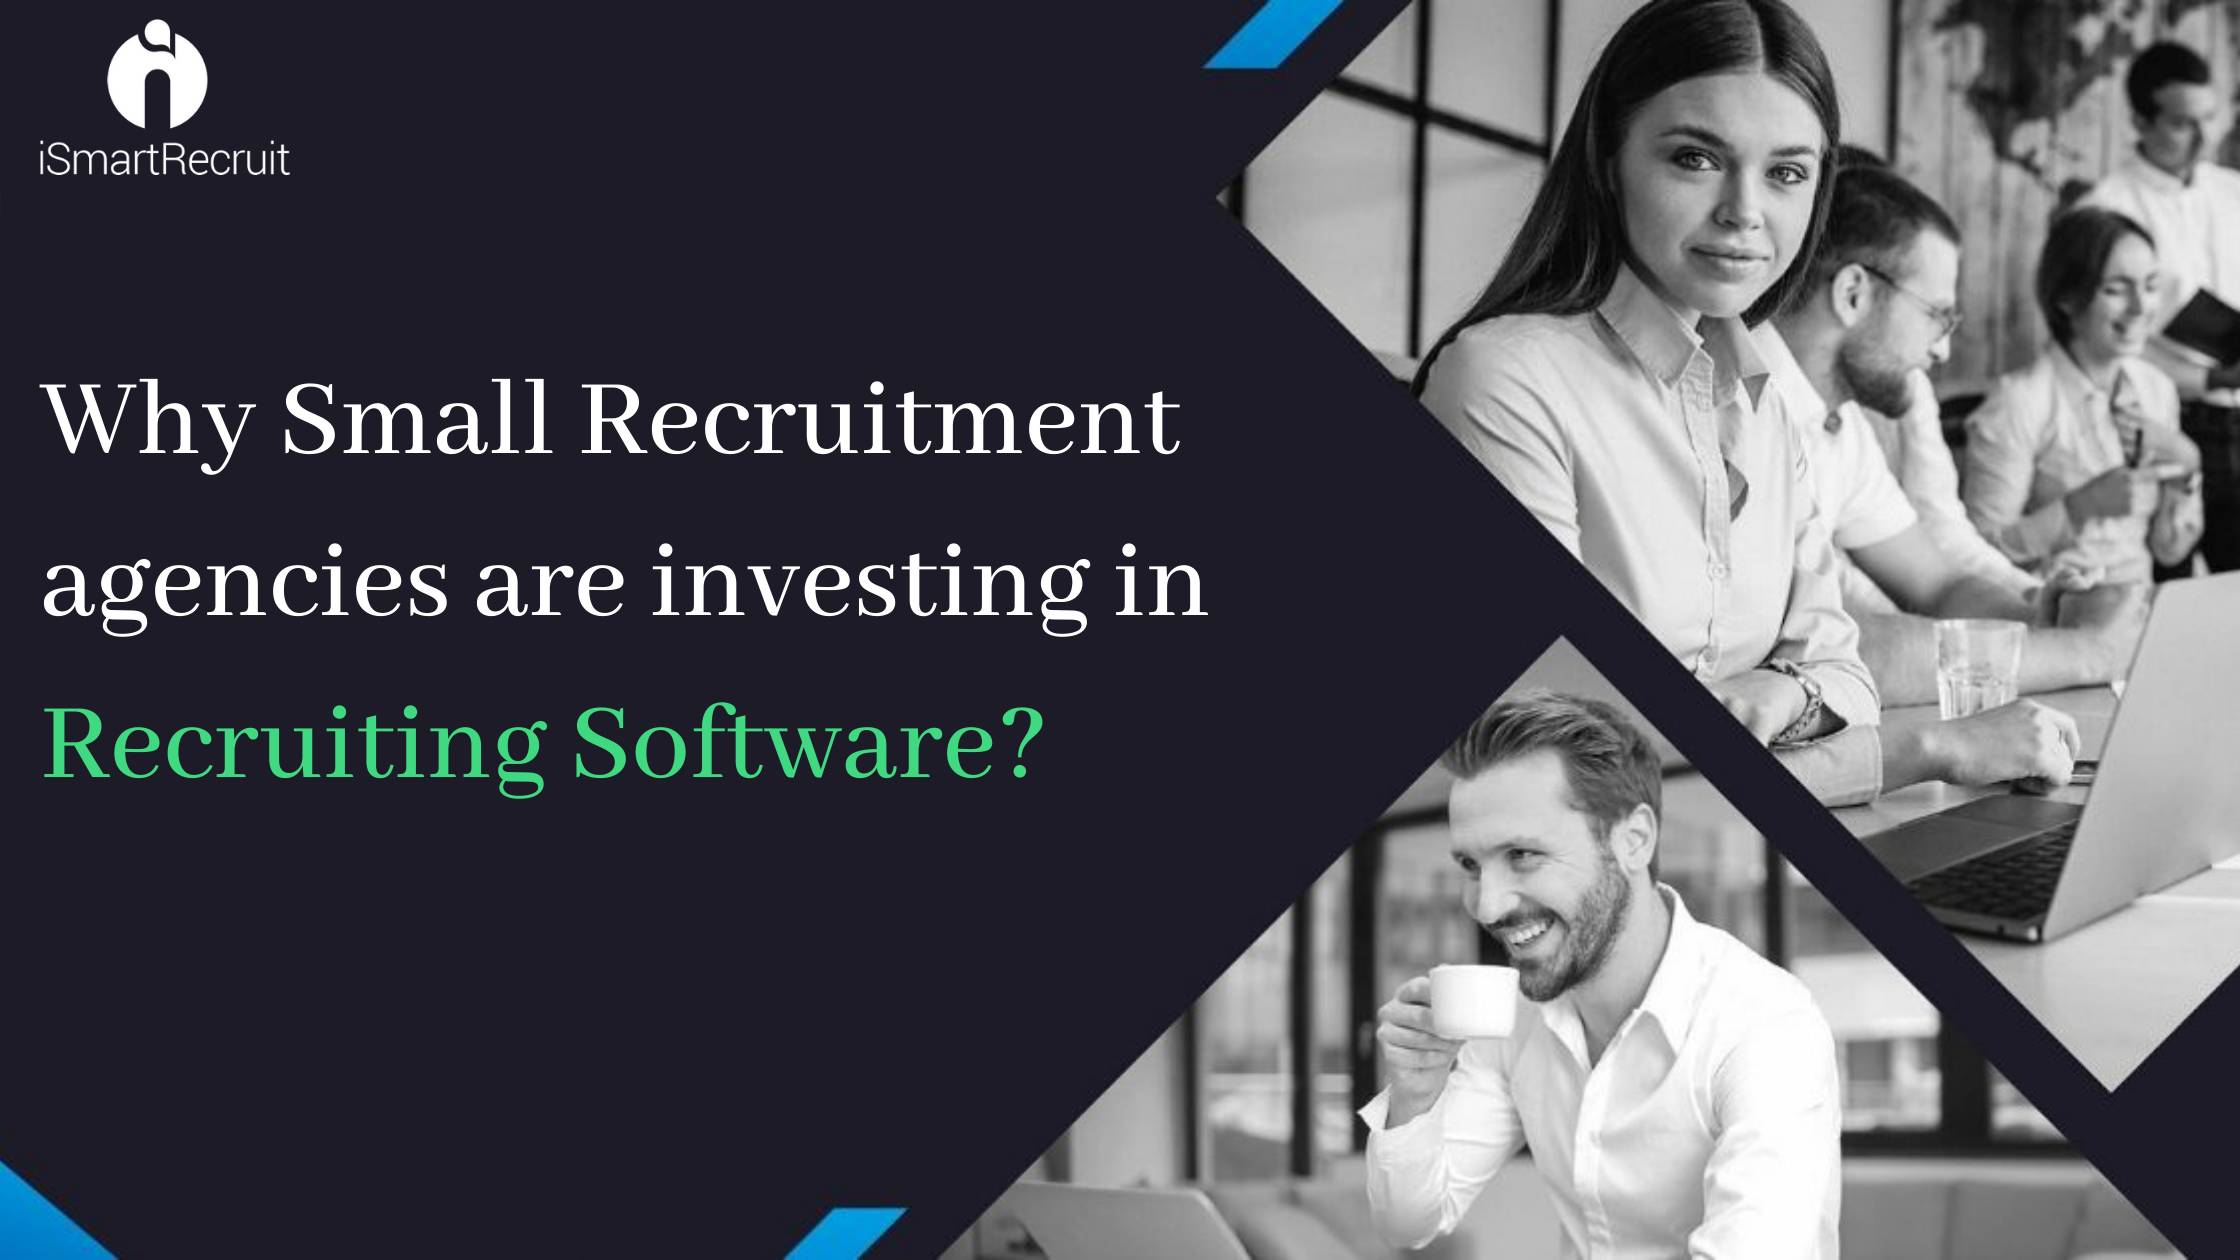 Why small recruitment agencies are investing in Recruiting Software?